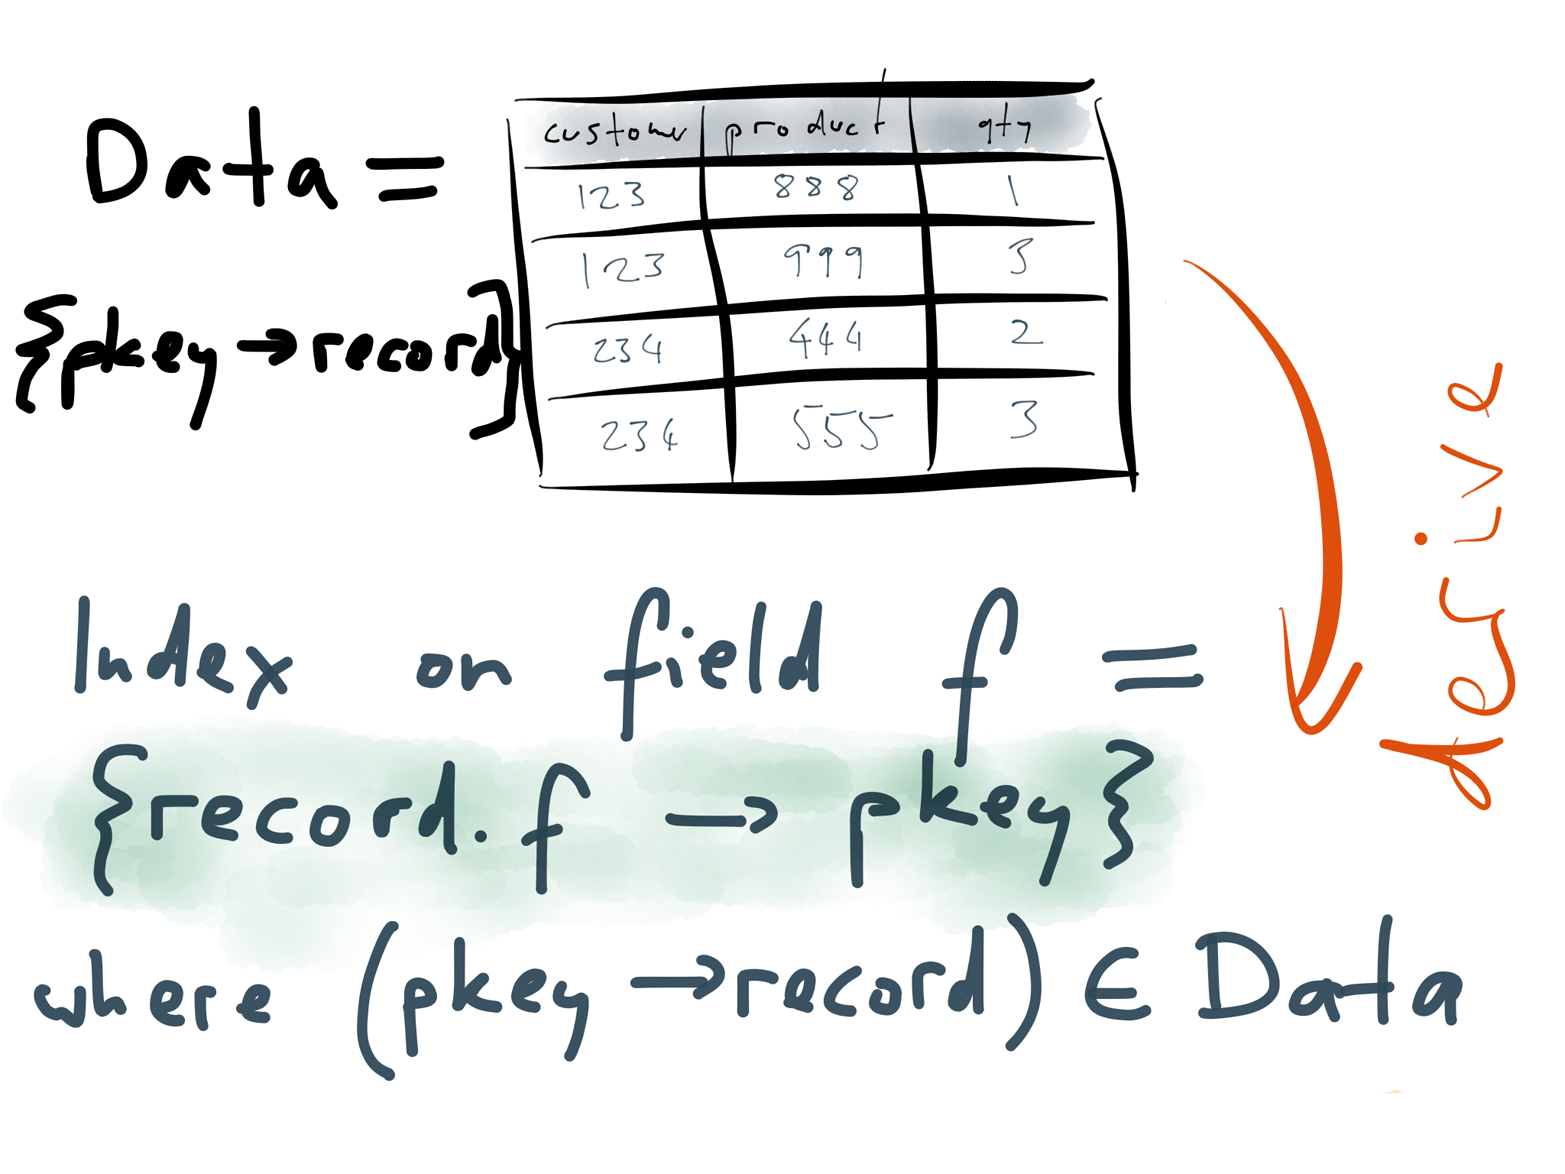 An index is derived from the data in the table by using a deterministic transformation.